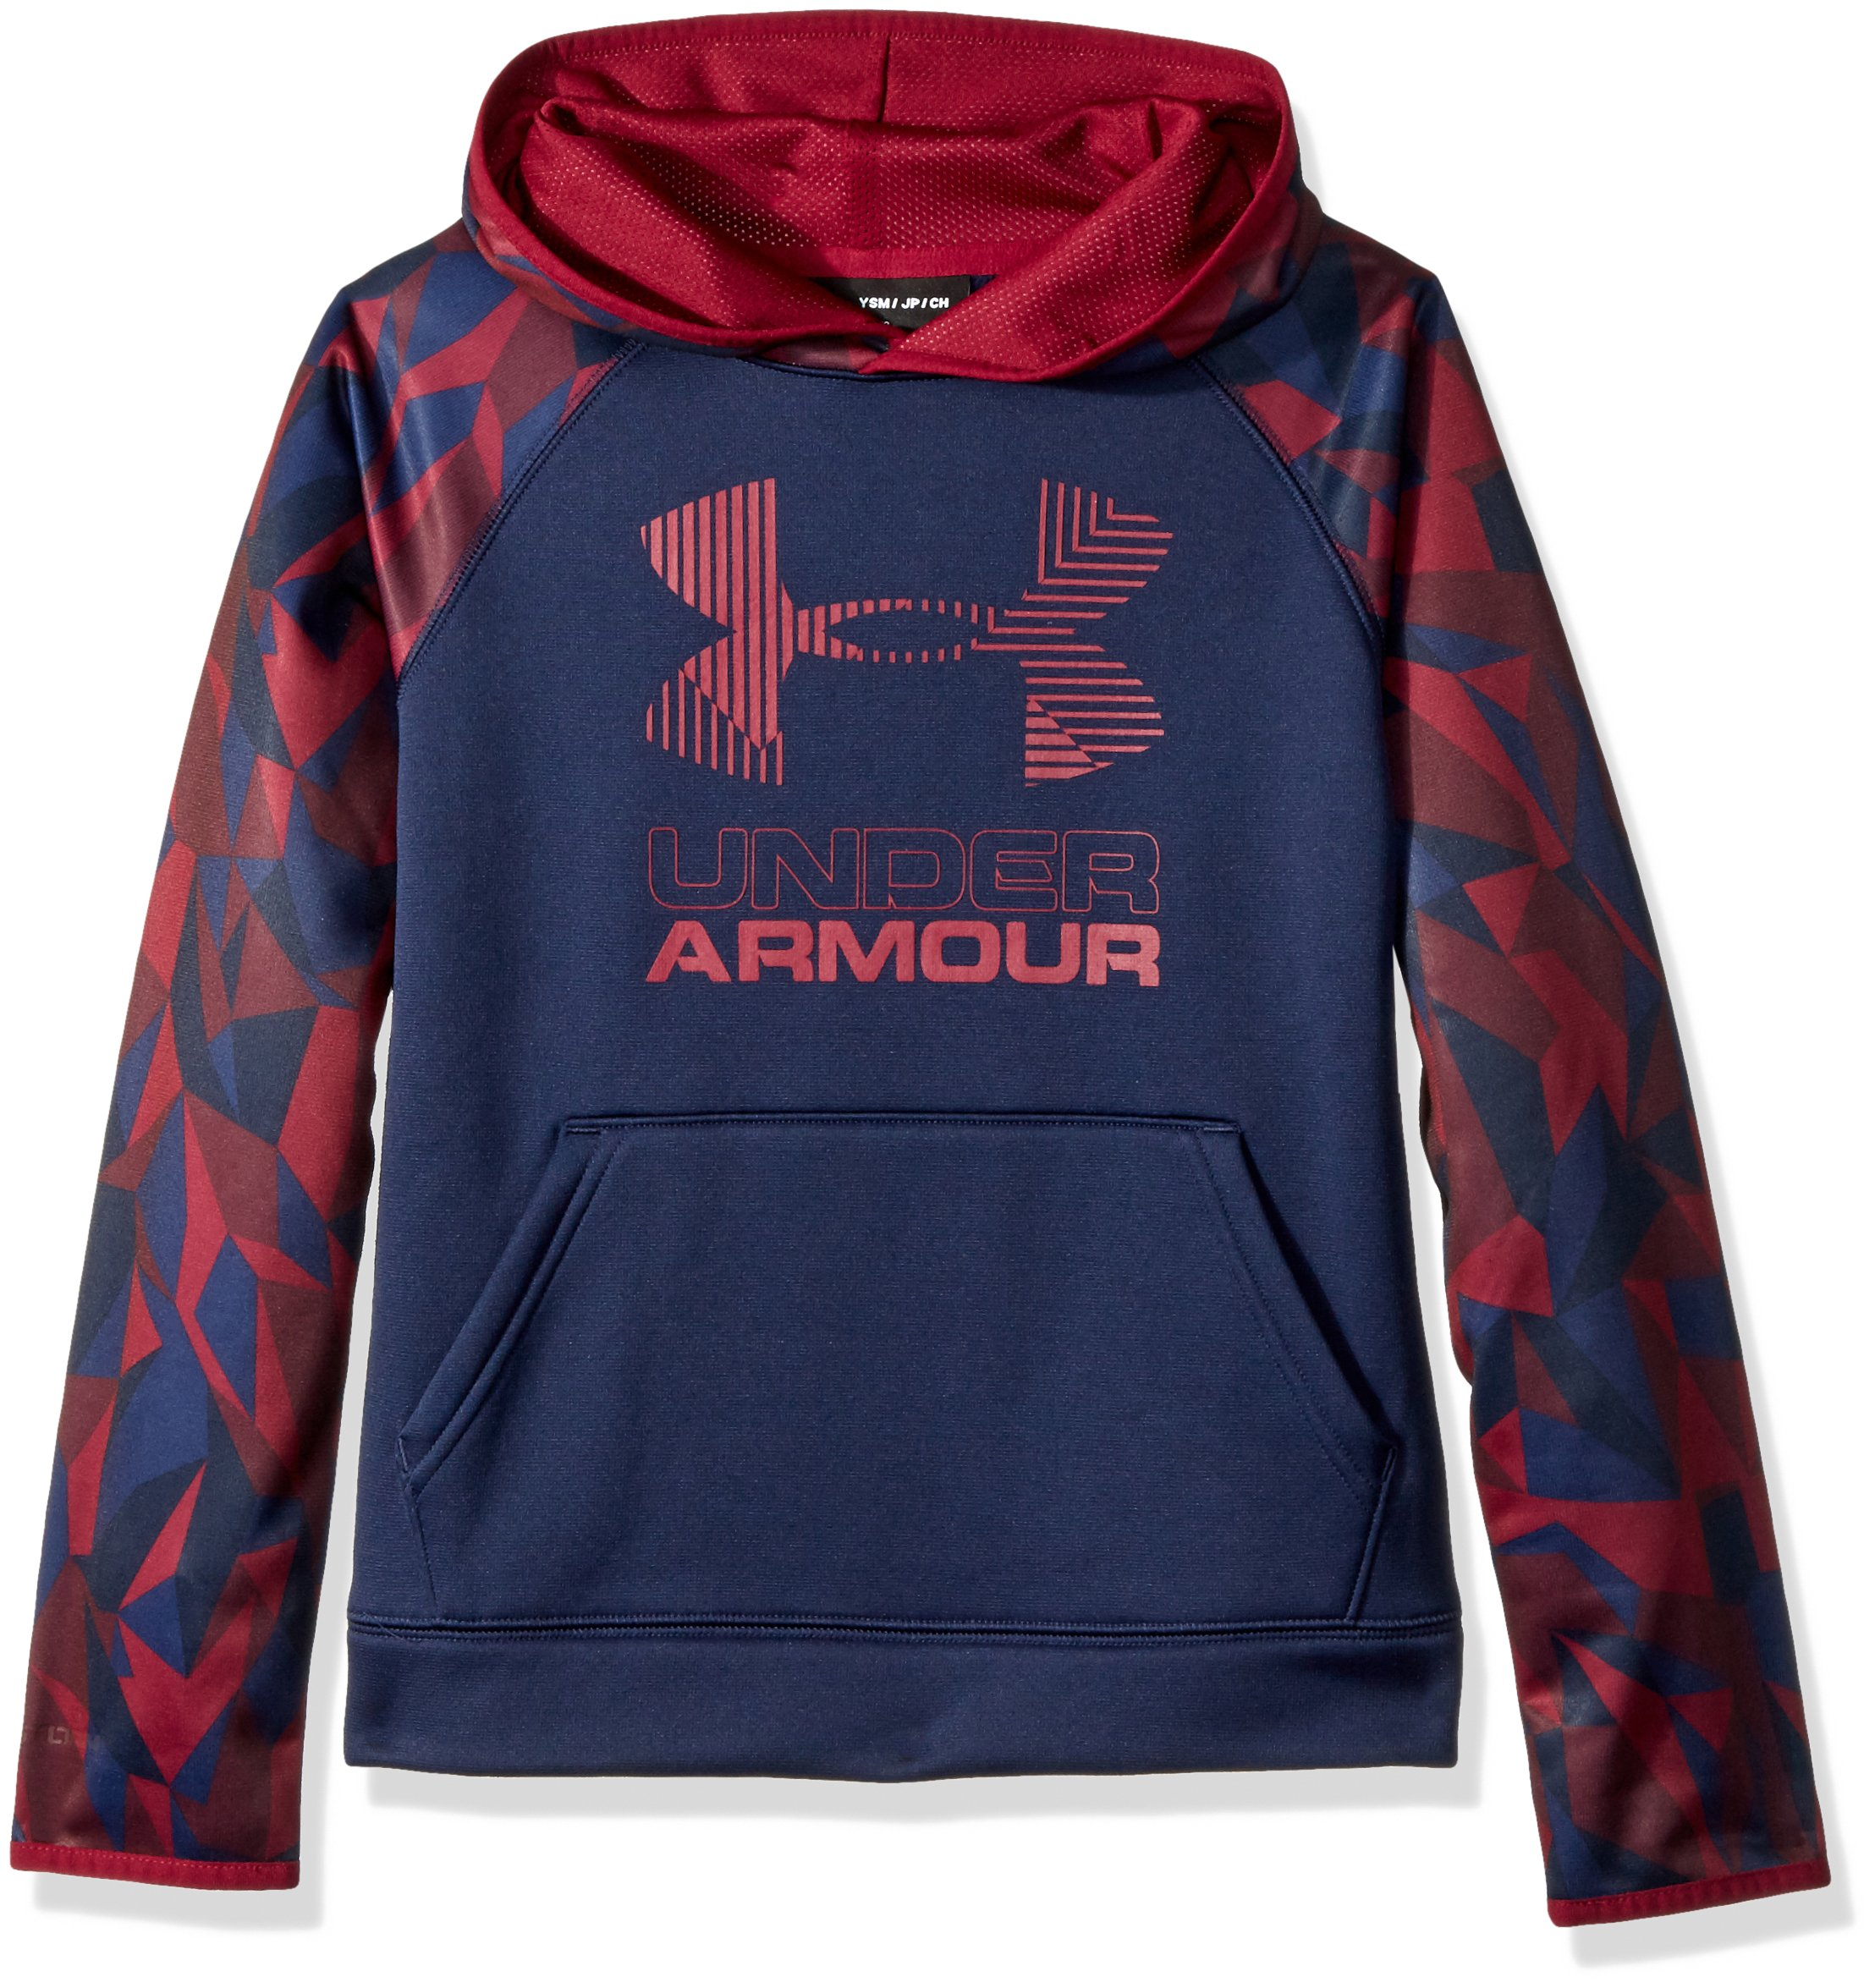 Under Armour Boys' Armour Fleece Printed Big Logo Hoodie, Black Currant /Black Currant, Youth Small